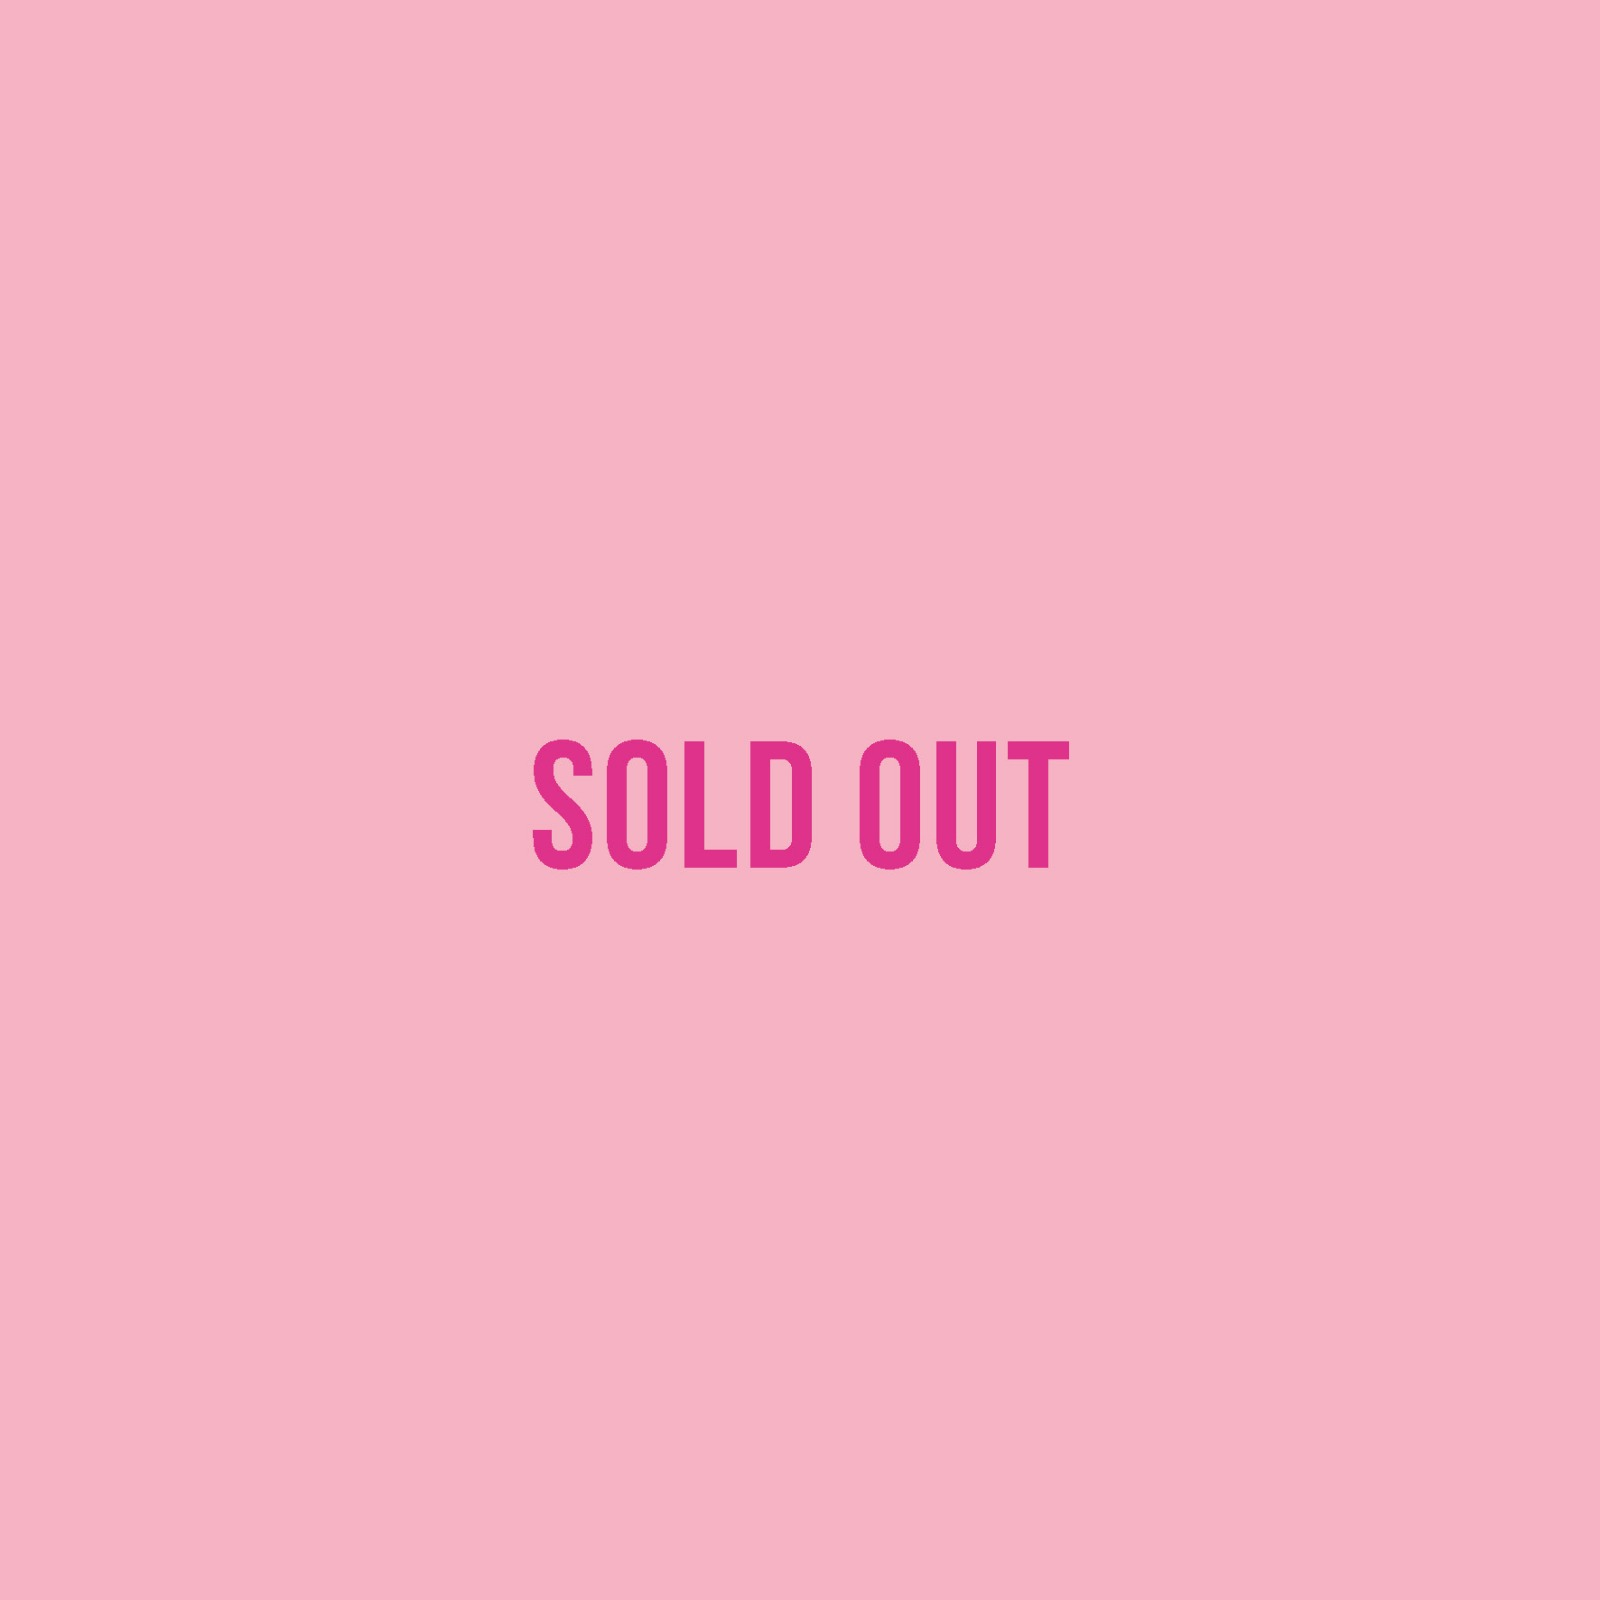 Sold out.jpeg